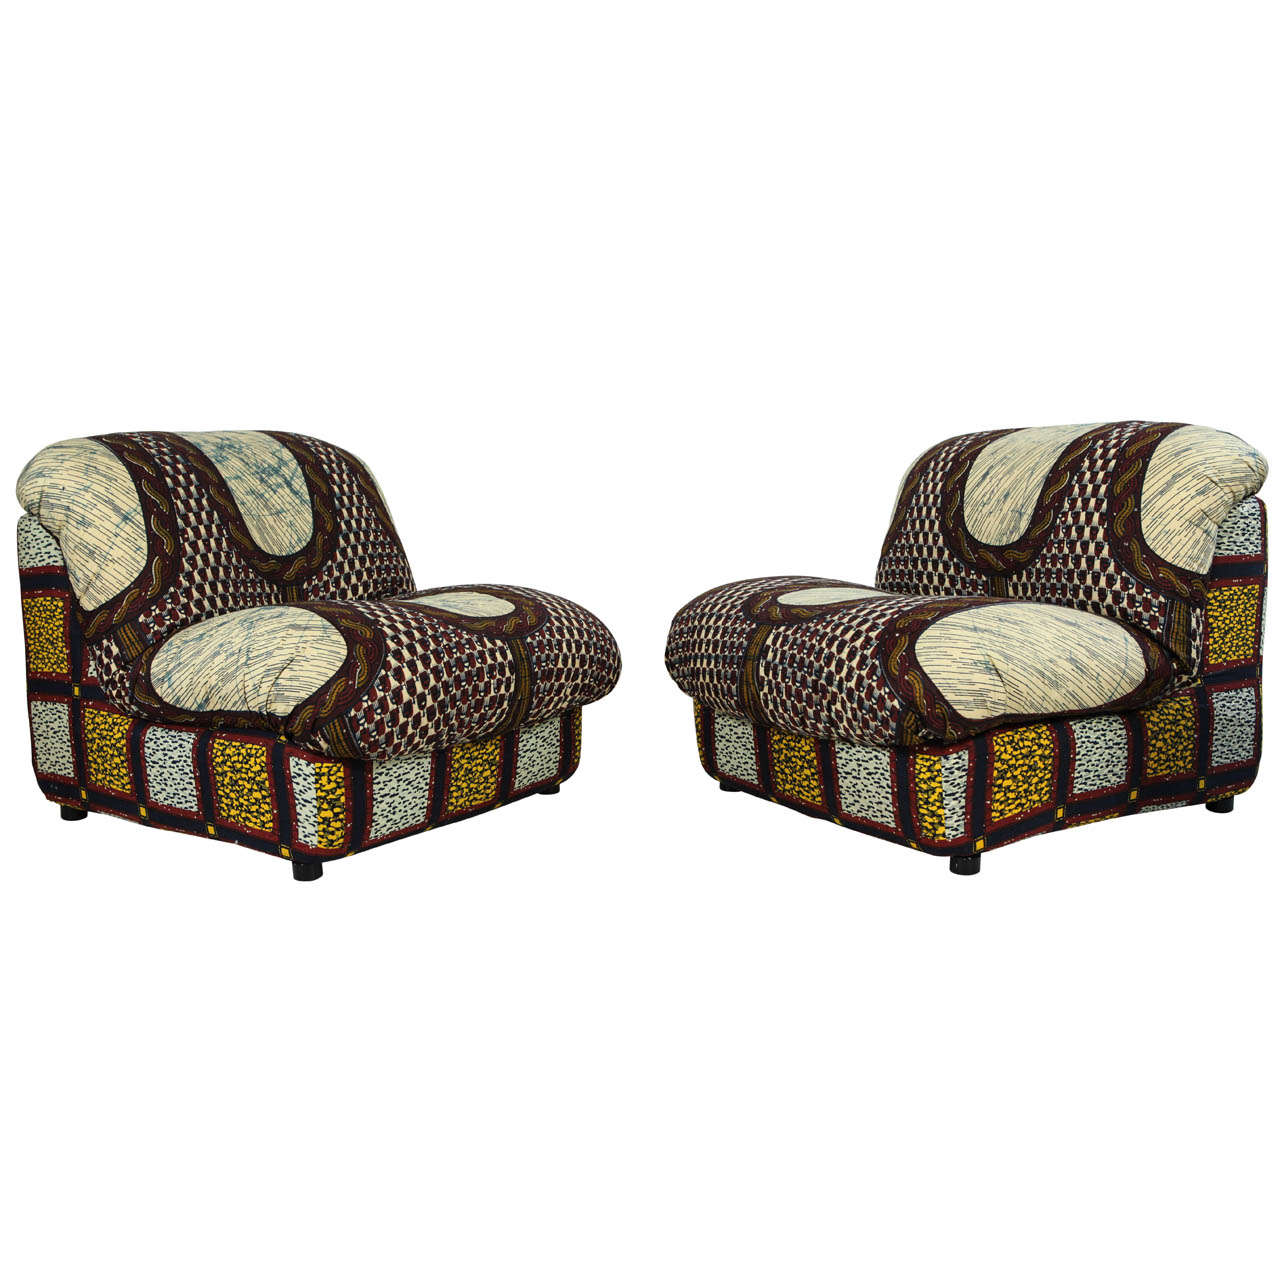 Italian Leather Furniture South Africa: Italian Lounge Chairs In Graphic African Fabric At 1stdibs